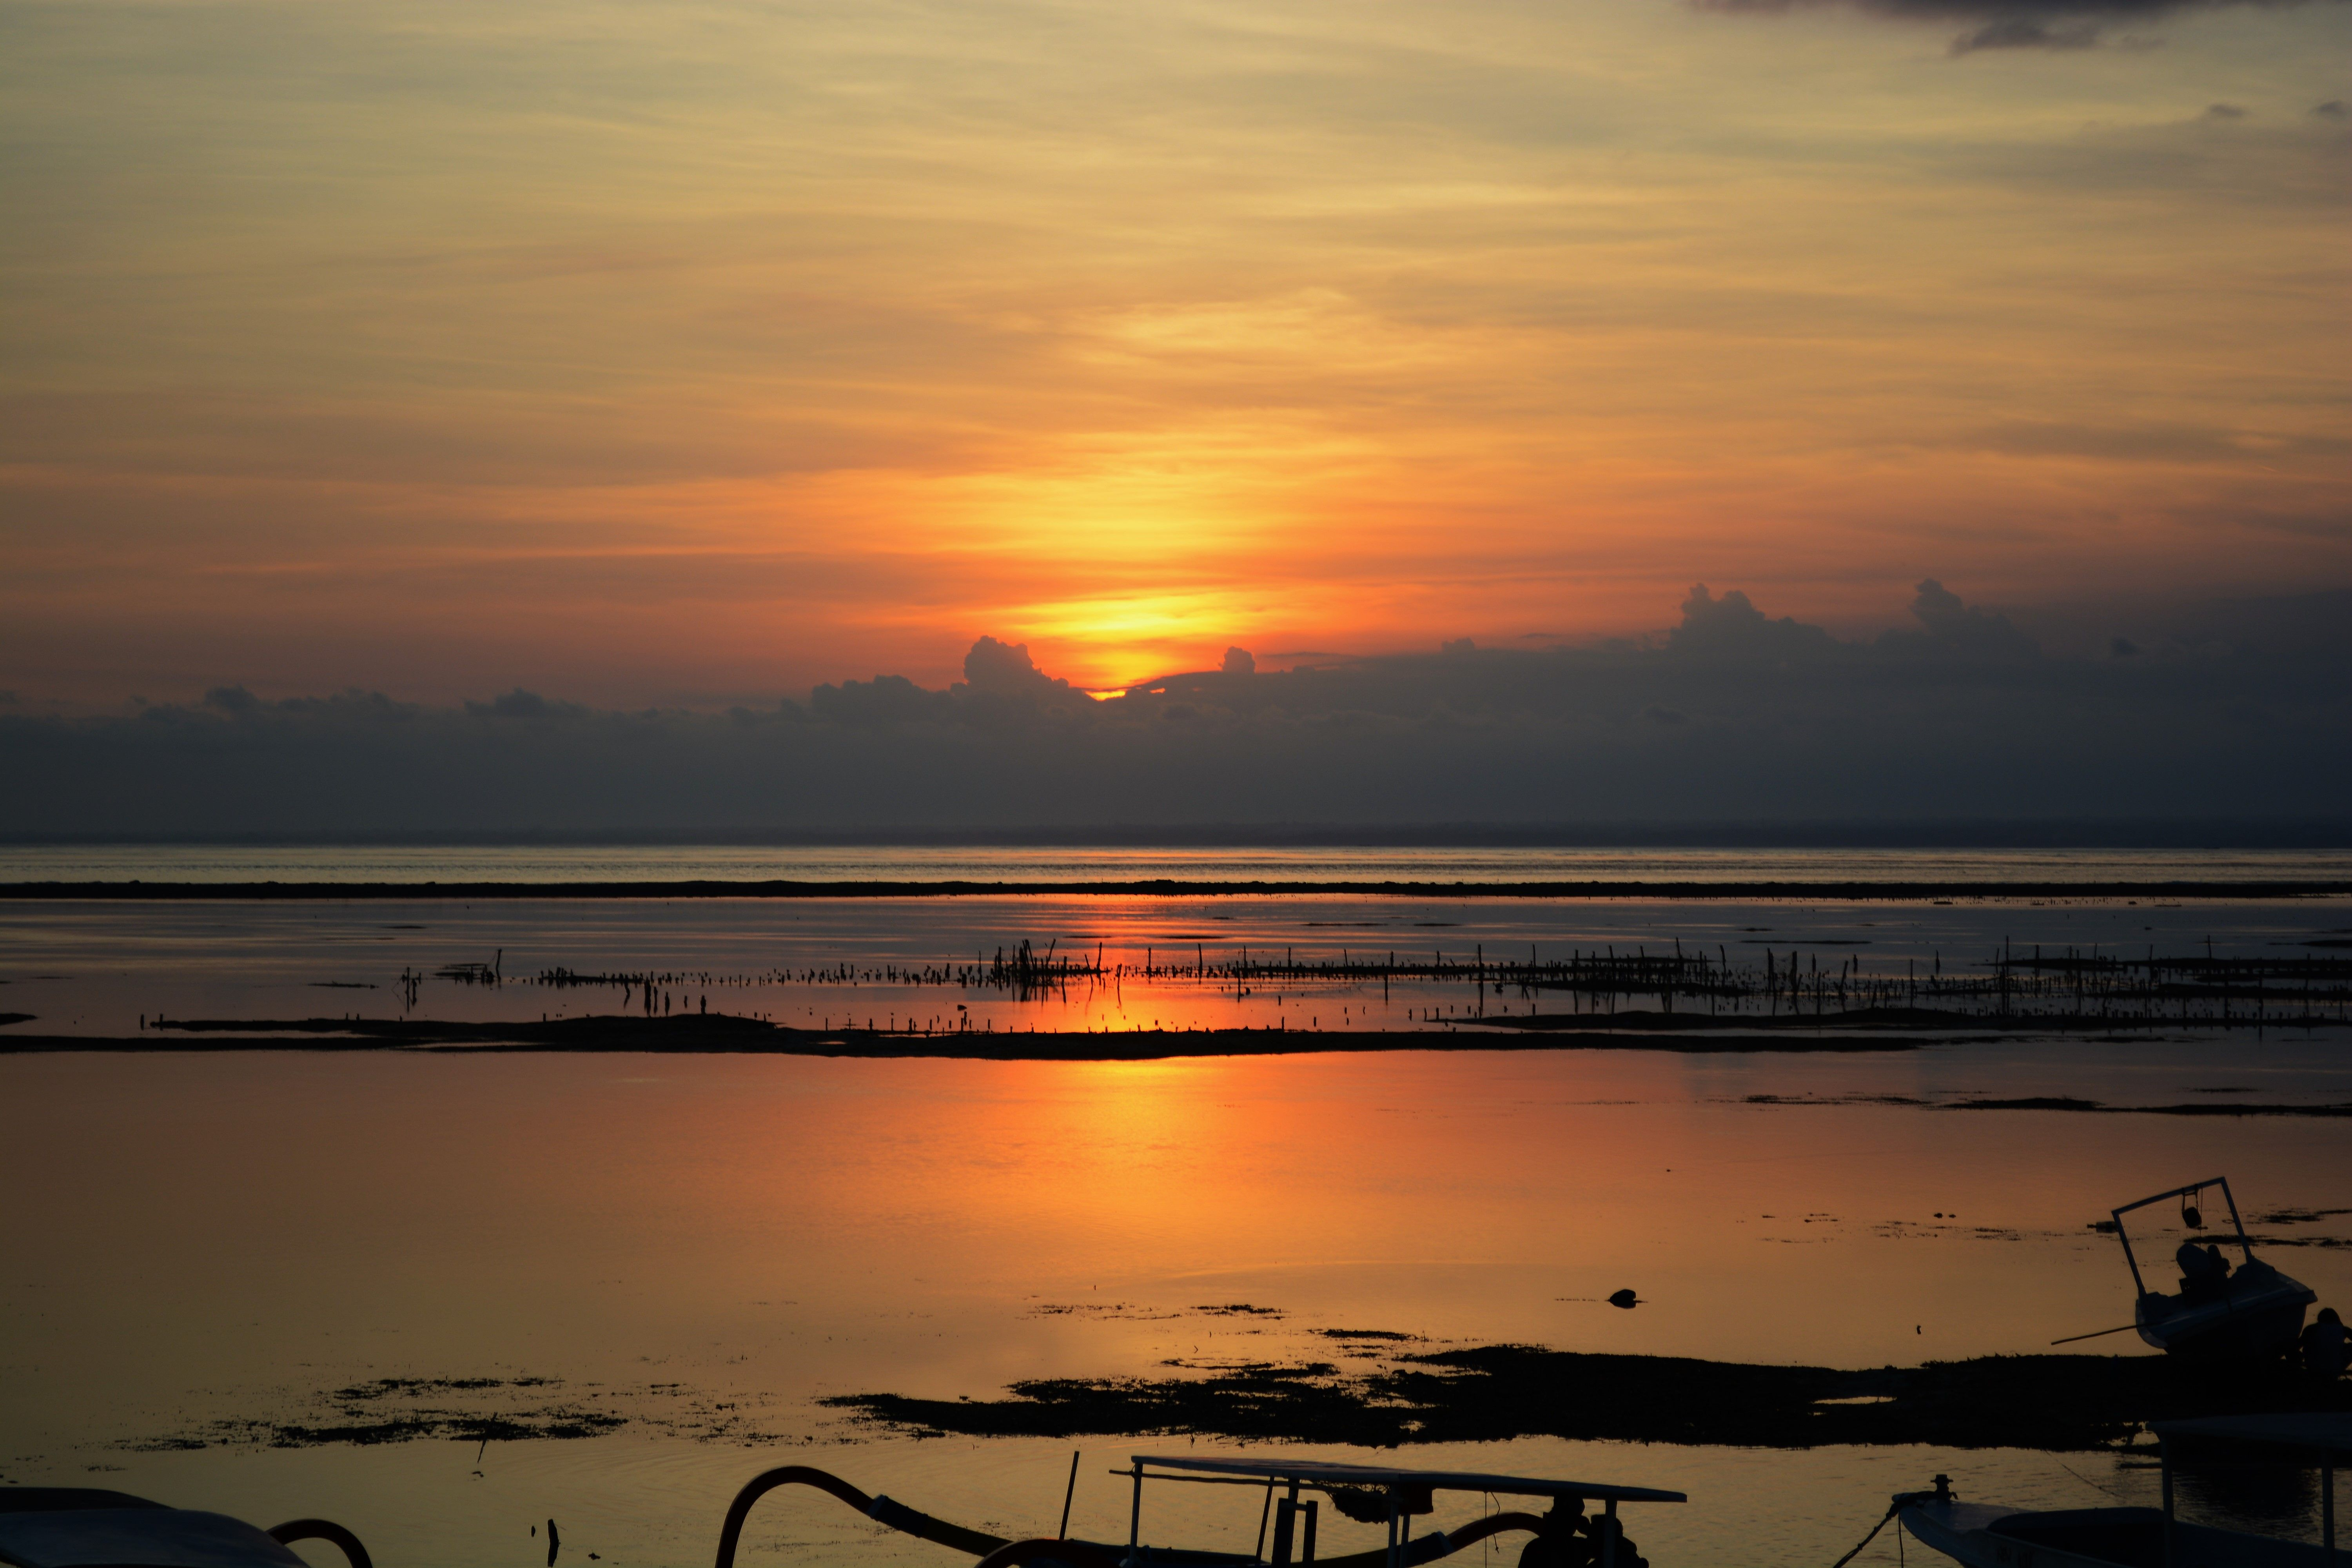 The Golden Sunsets of the Indian Ocean